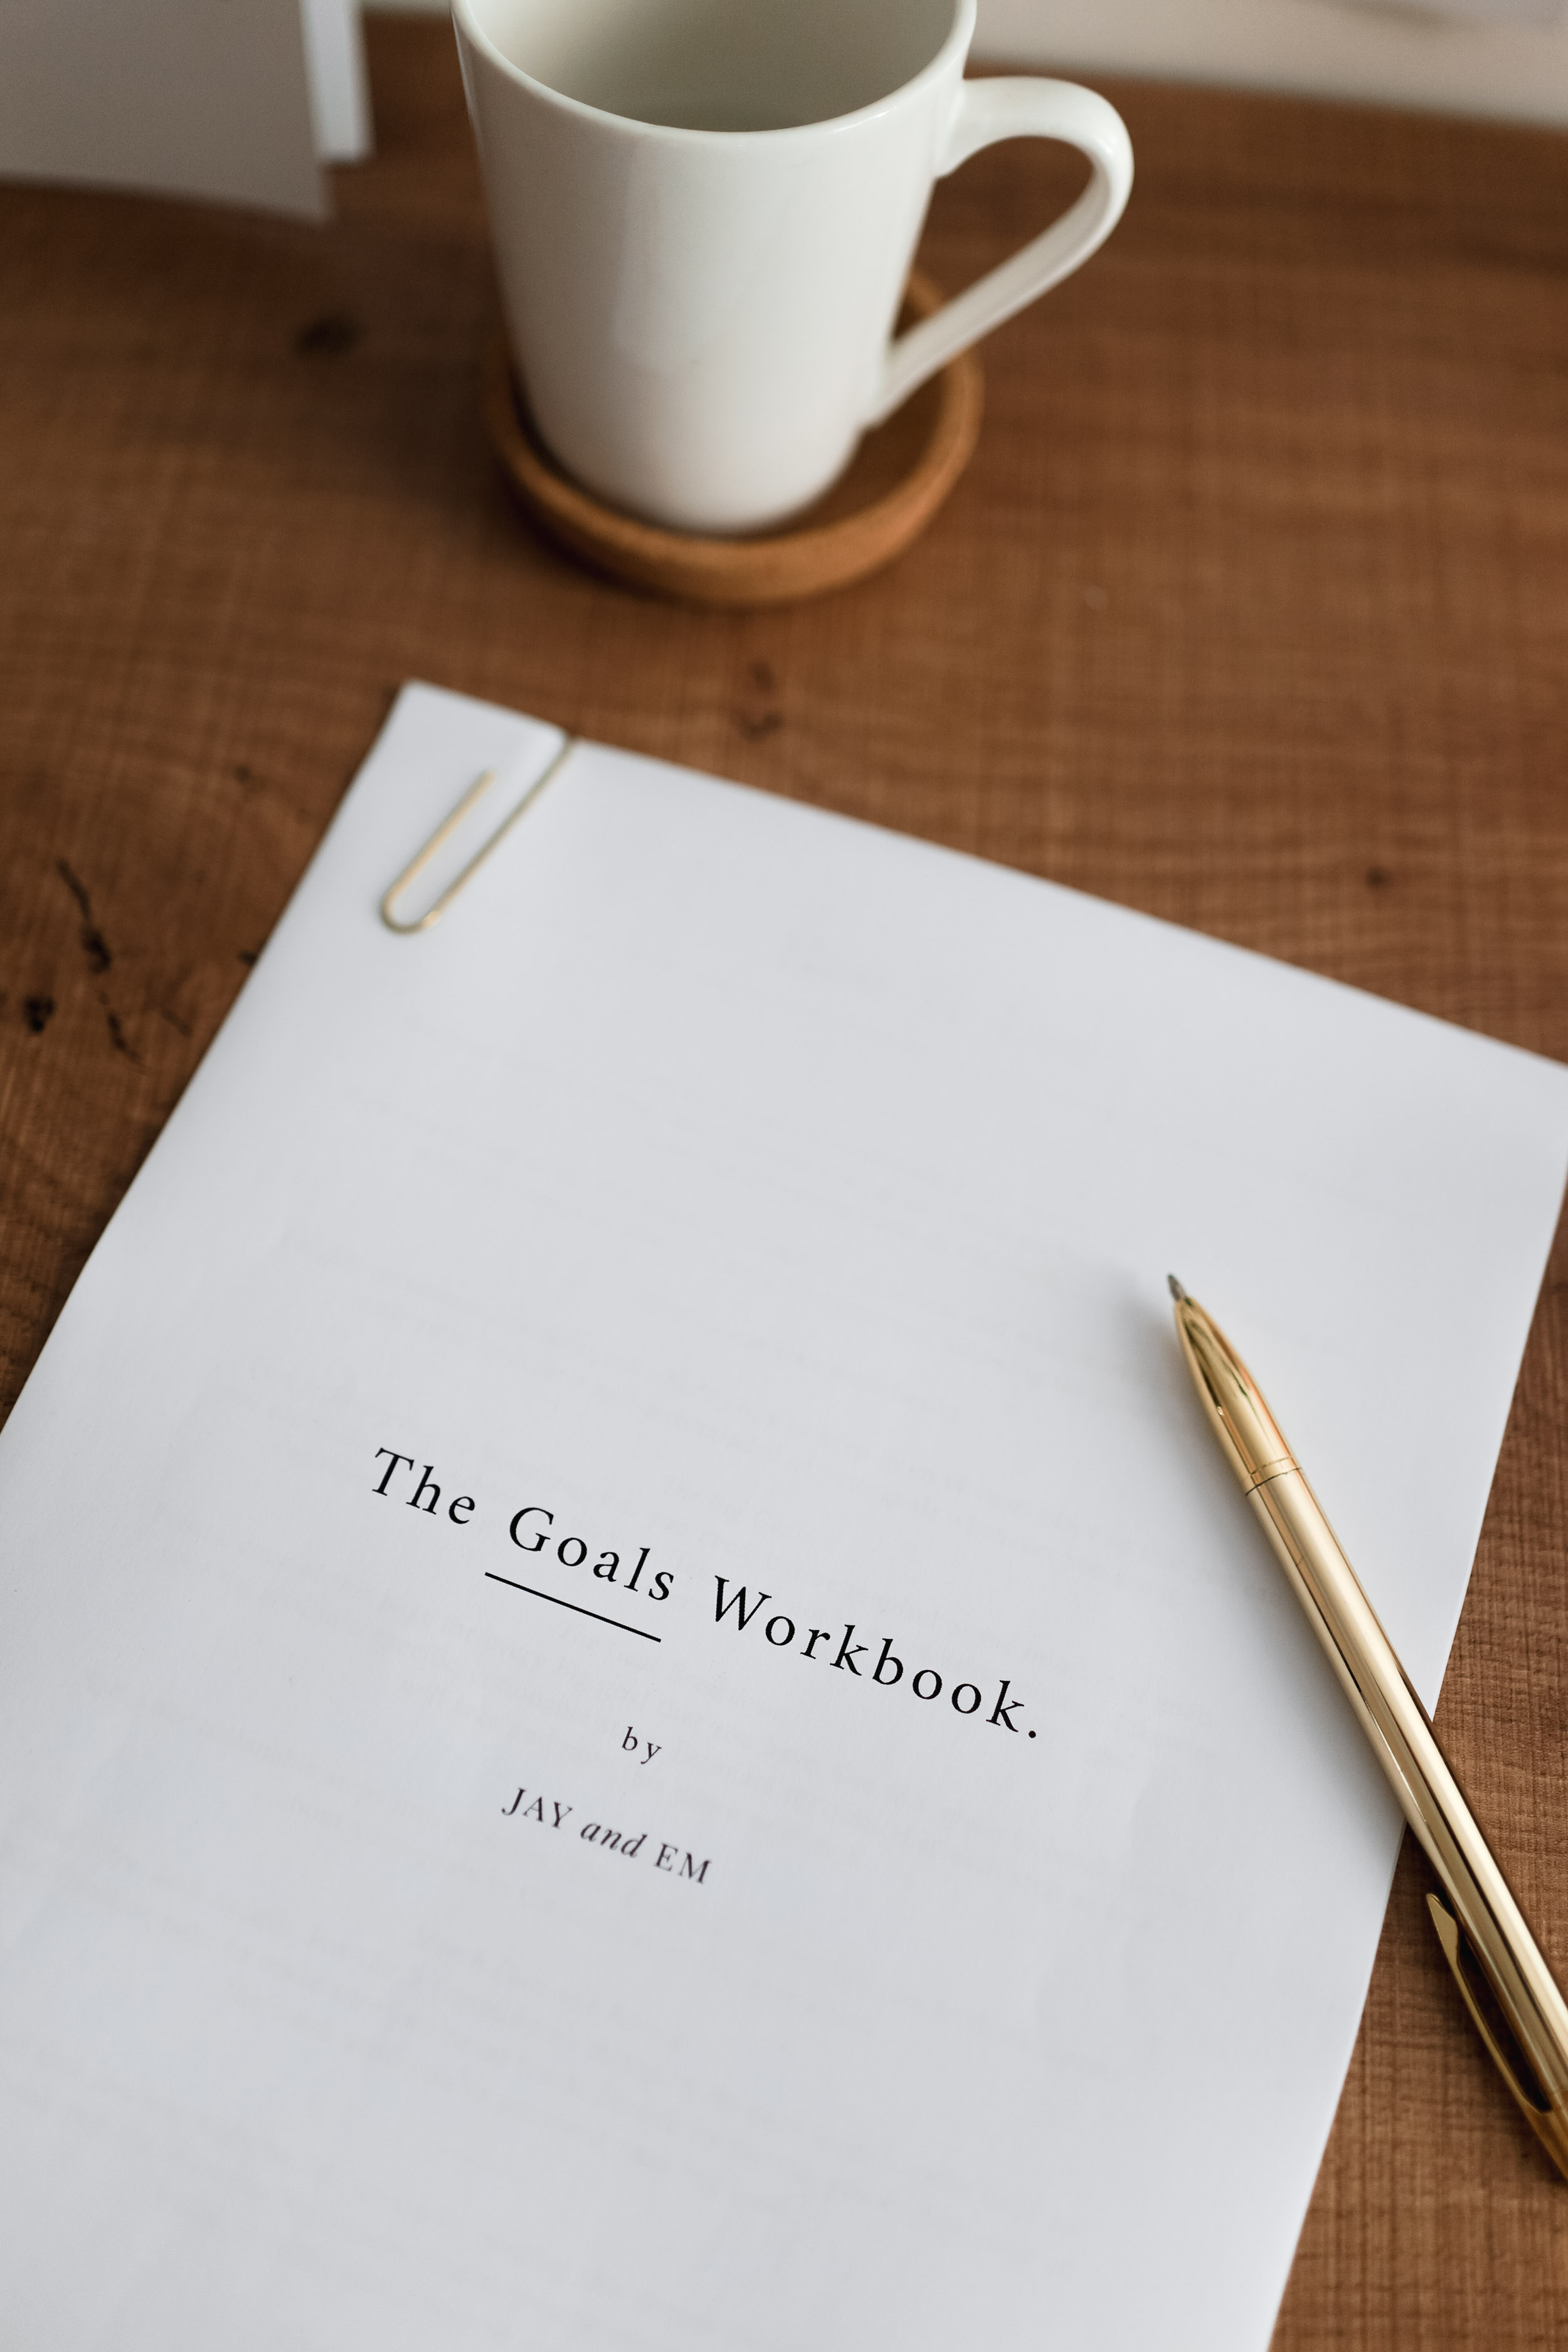 Click here to download The Goals Workbook.